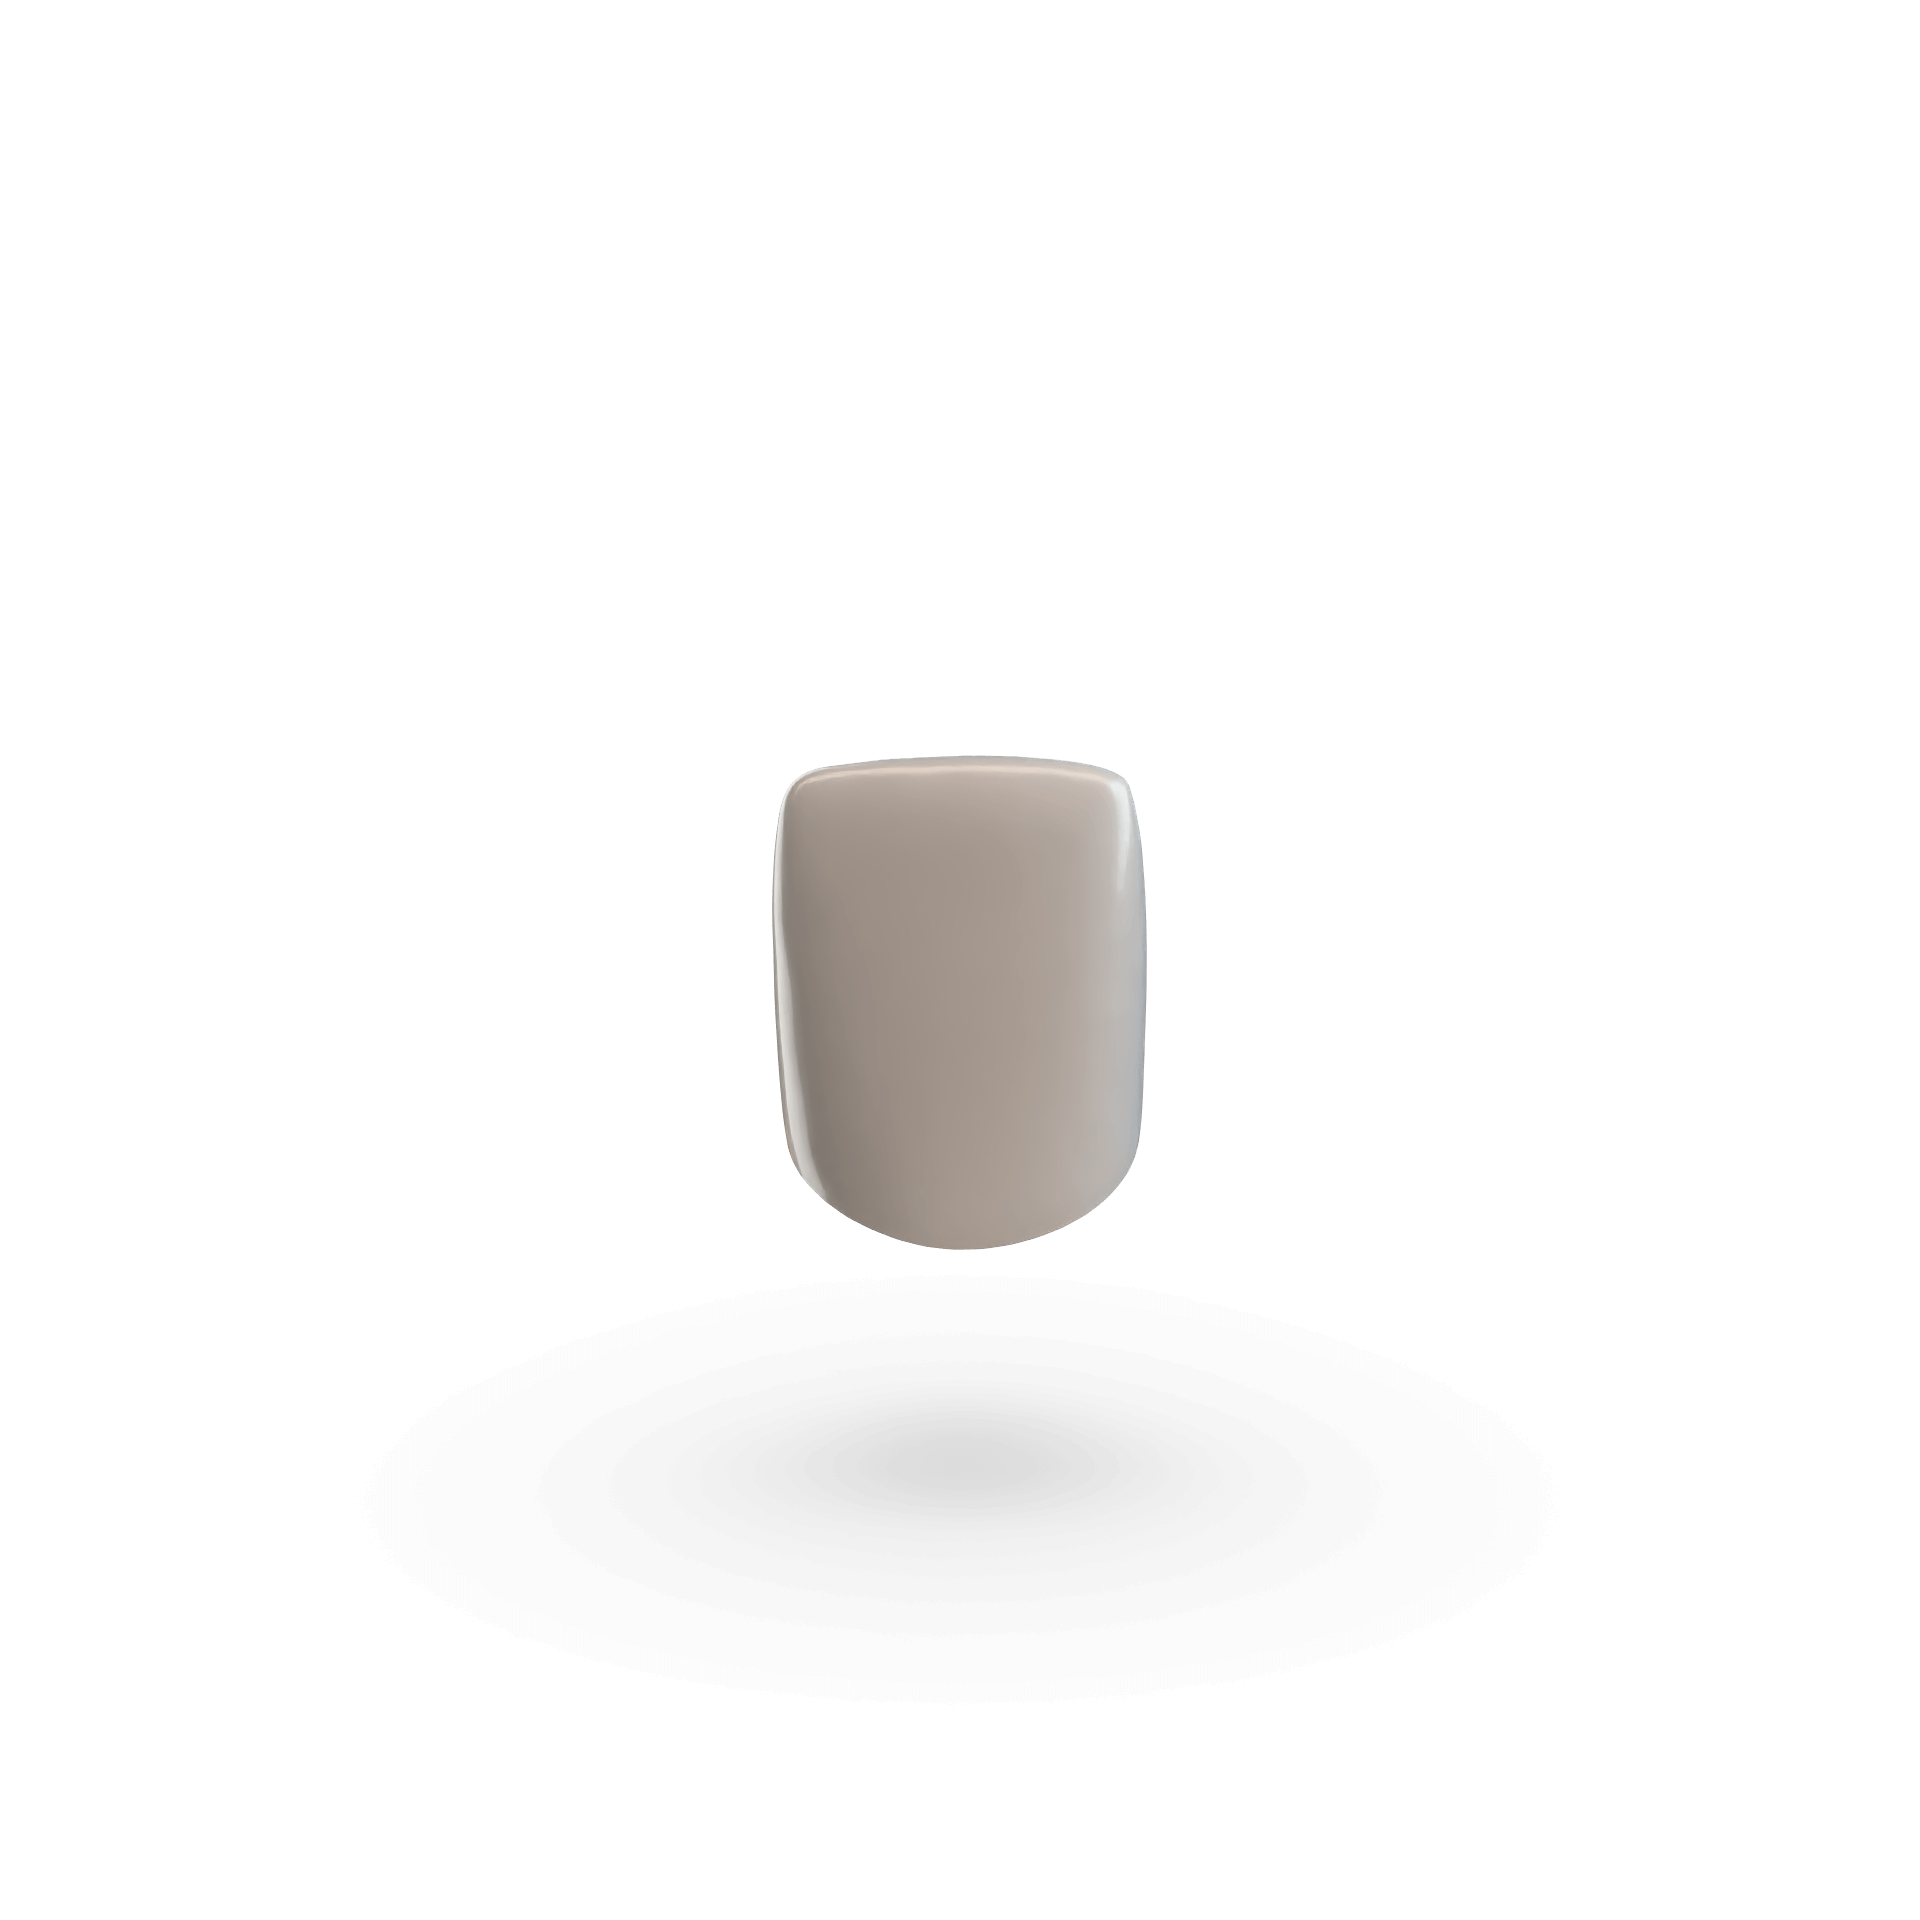 Incisor Lower (71, 72, 81, 82)